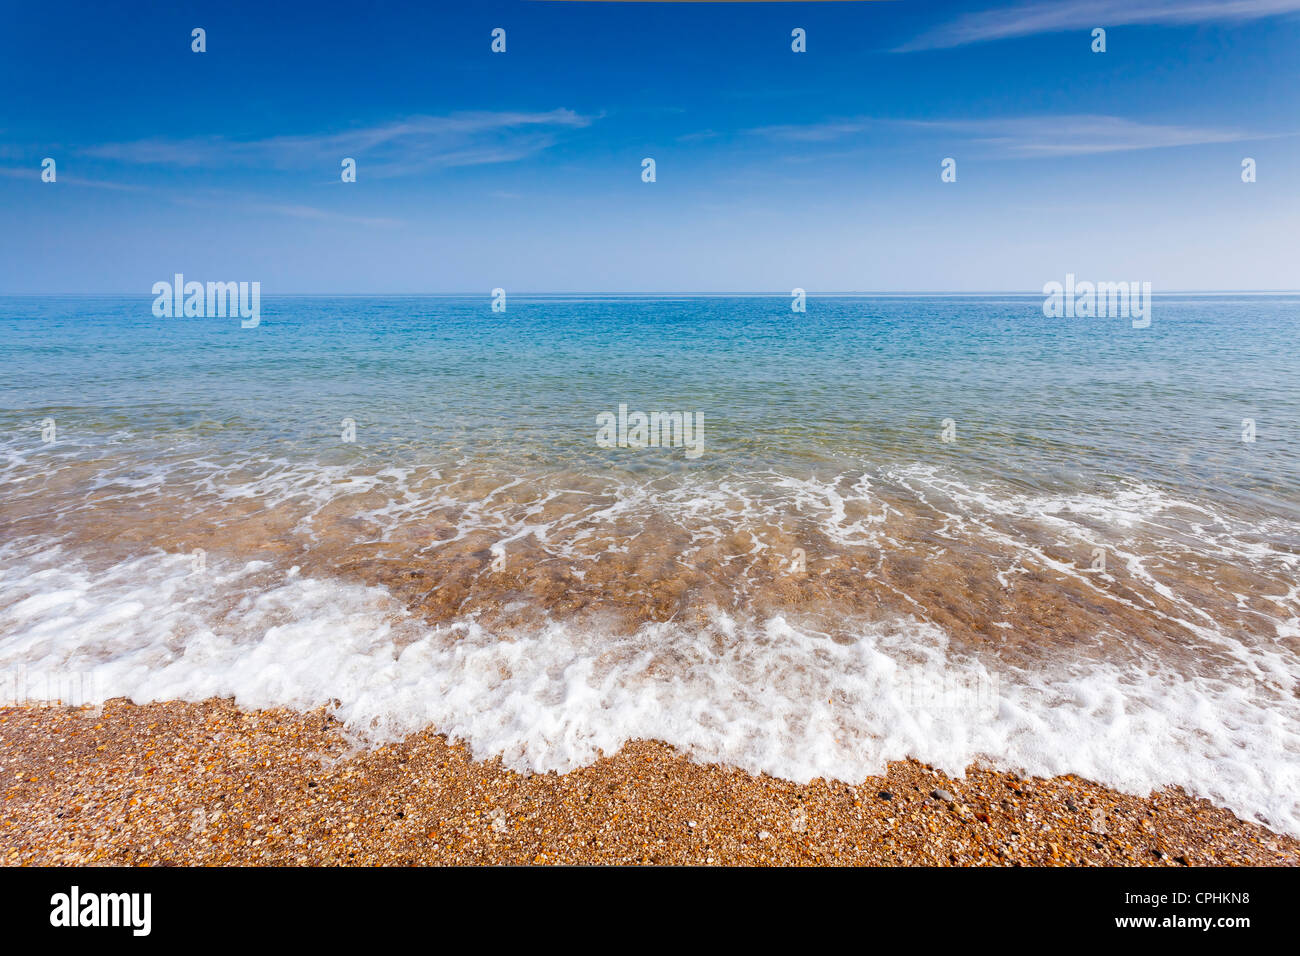 Glorious summers day with waves lapping the shore on a pebble beach. - Stock Image